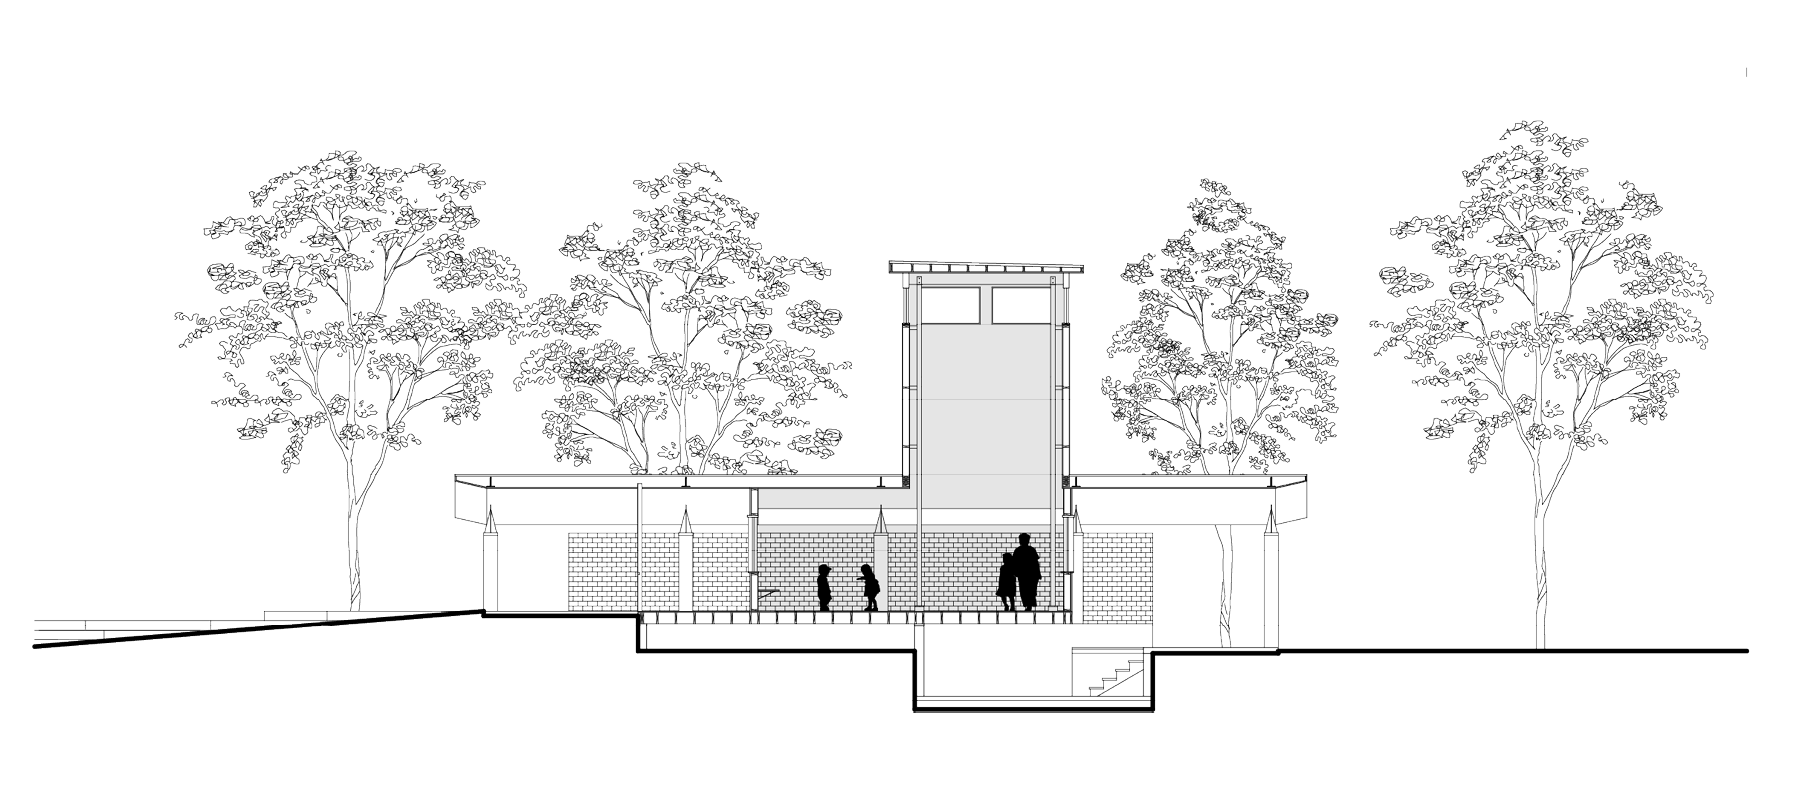 plan showing side view rendering of christine's home